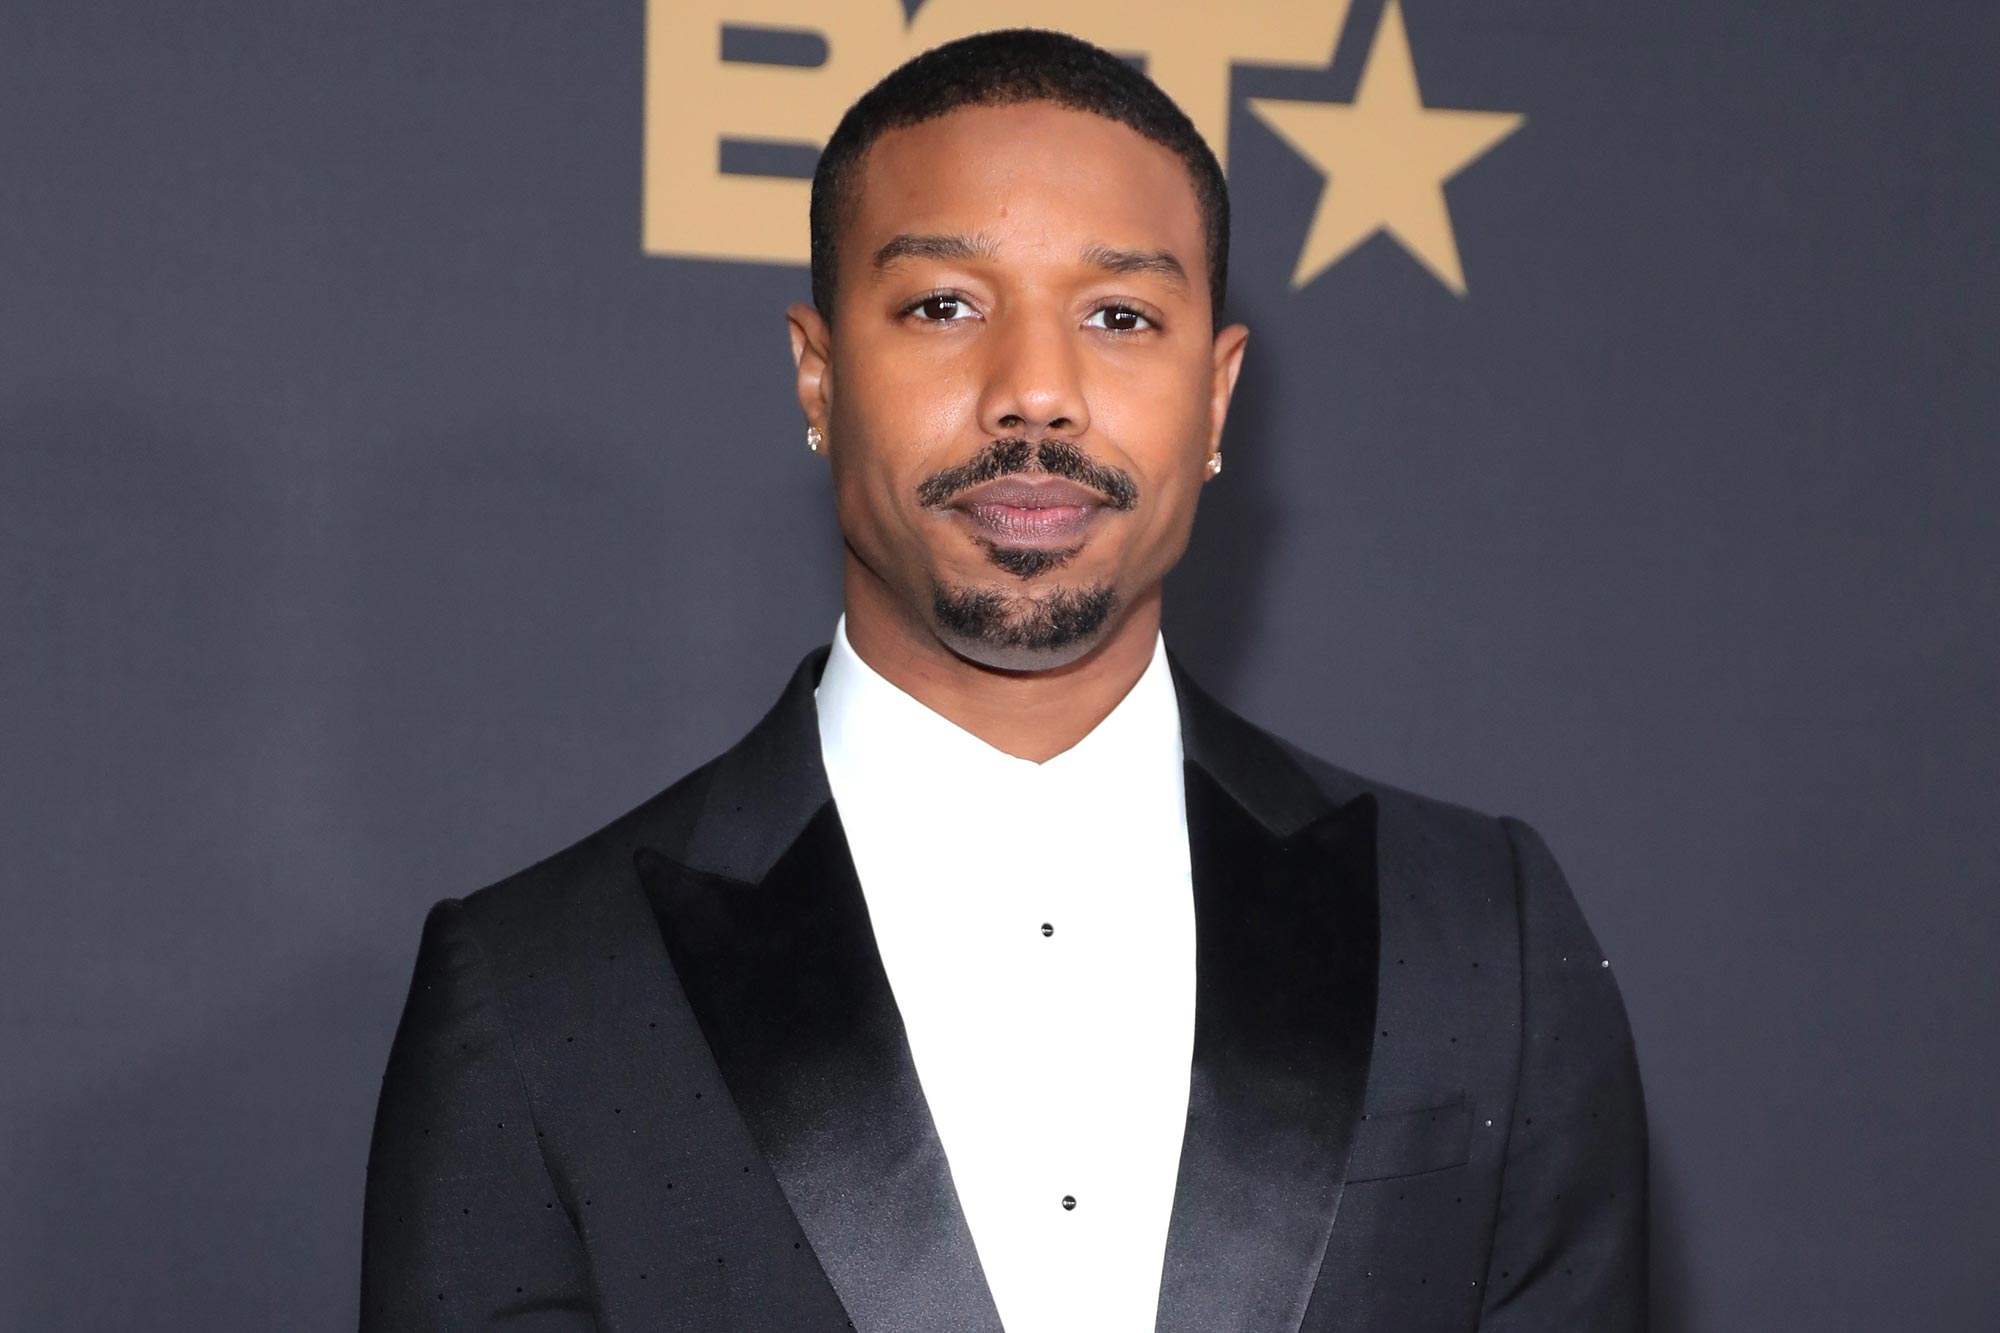 Michael B. Jordan Apologizes for Cultural Appropriation Remarks Over New Rum Brand